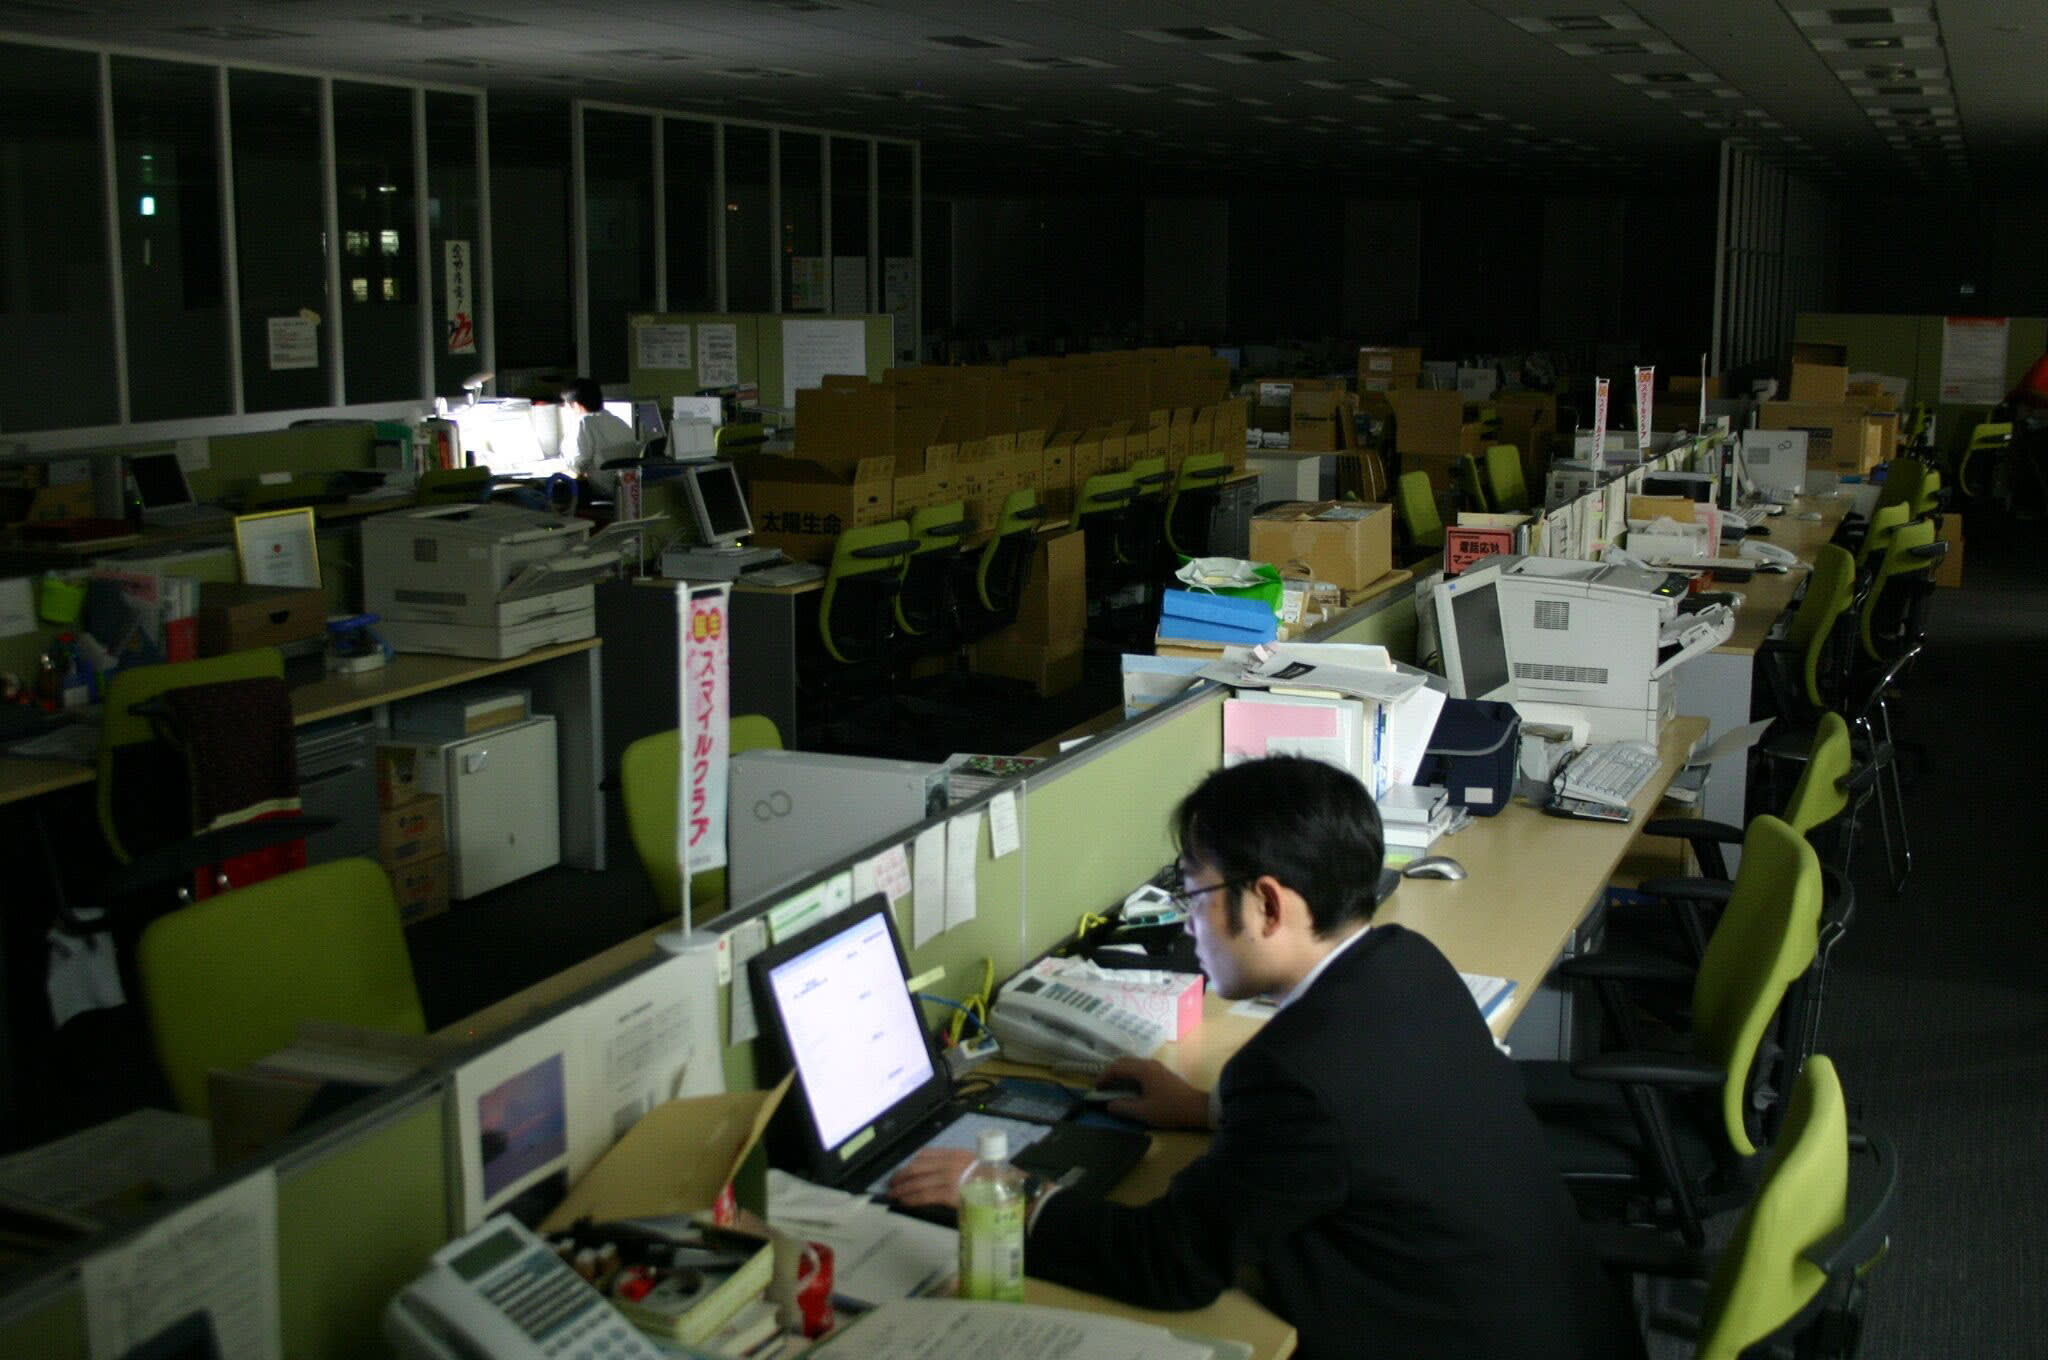 Japan aims to cap overtime at 60 hours a month - Nikkei Asian Review